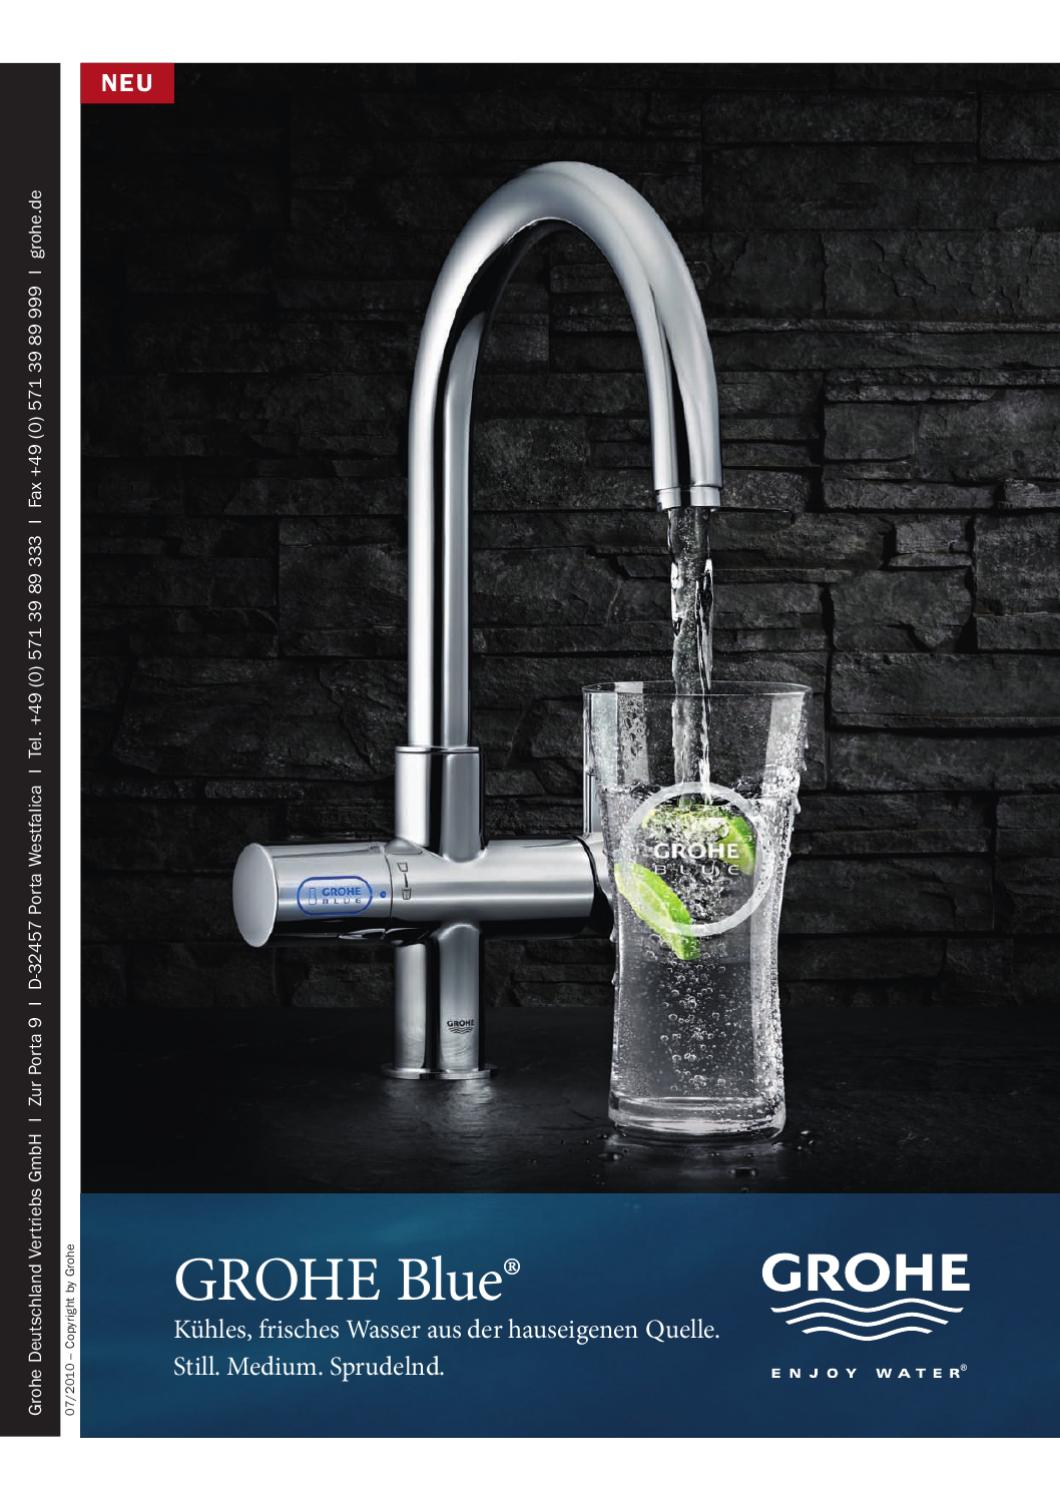 grohe blue grohe red by grohe issuu. Black Bedroom Furniture Sets. Home Design Ideas